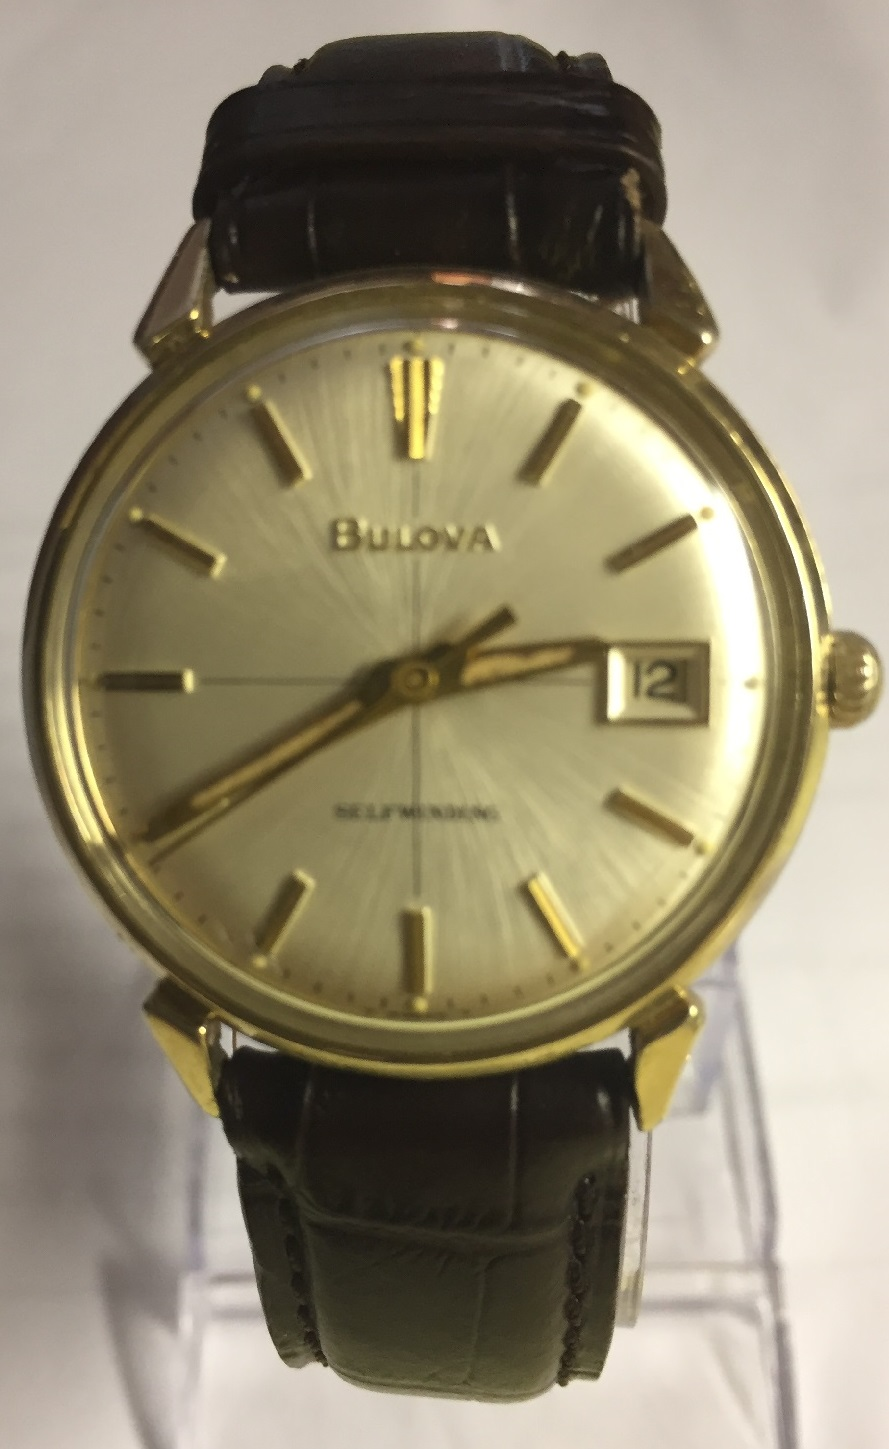 1967 Bulova date king watch